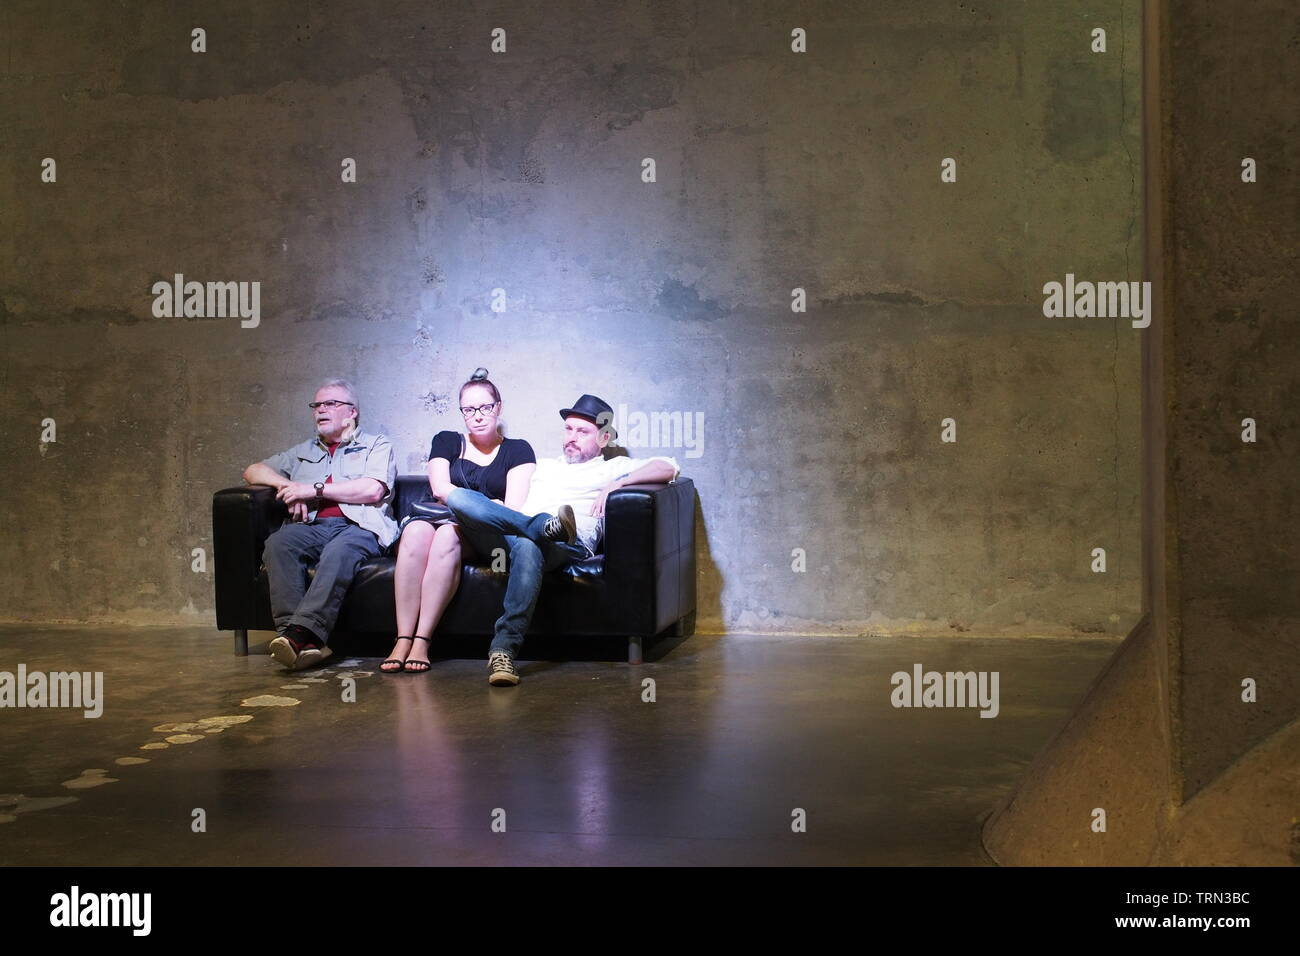 Visitors relax on a couch in the Bank of Canada gold vault, deep within the Diefenbunker, Canada's Cold War Museum, Carp, Ontario, Canada. - Stock Image